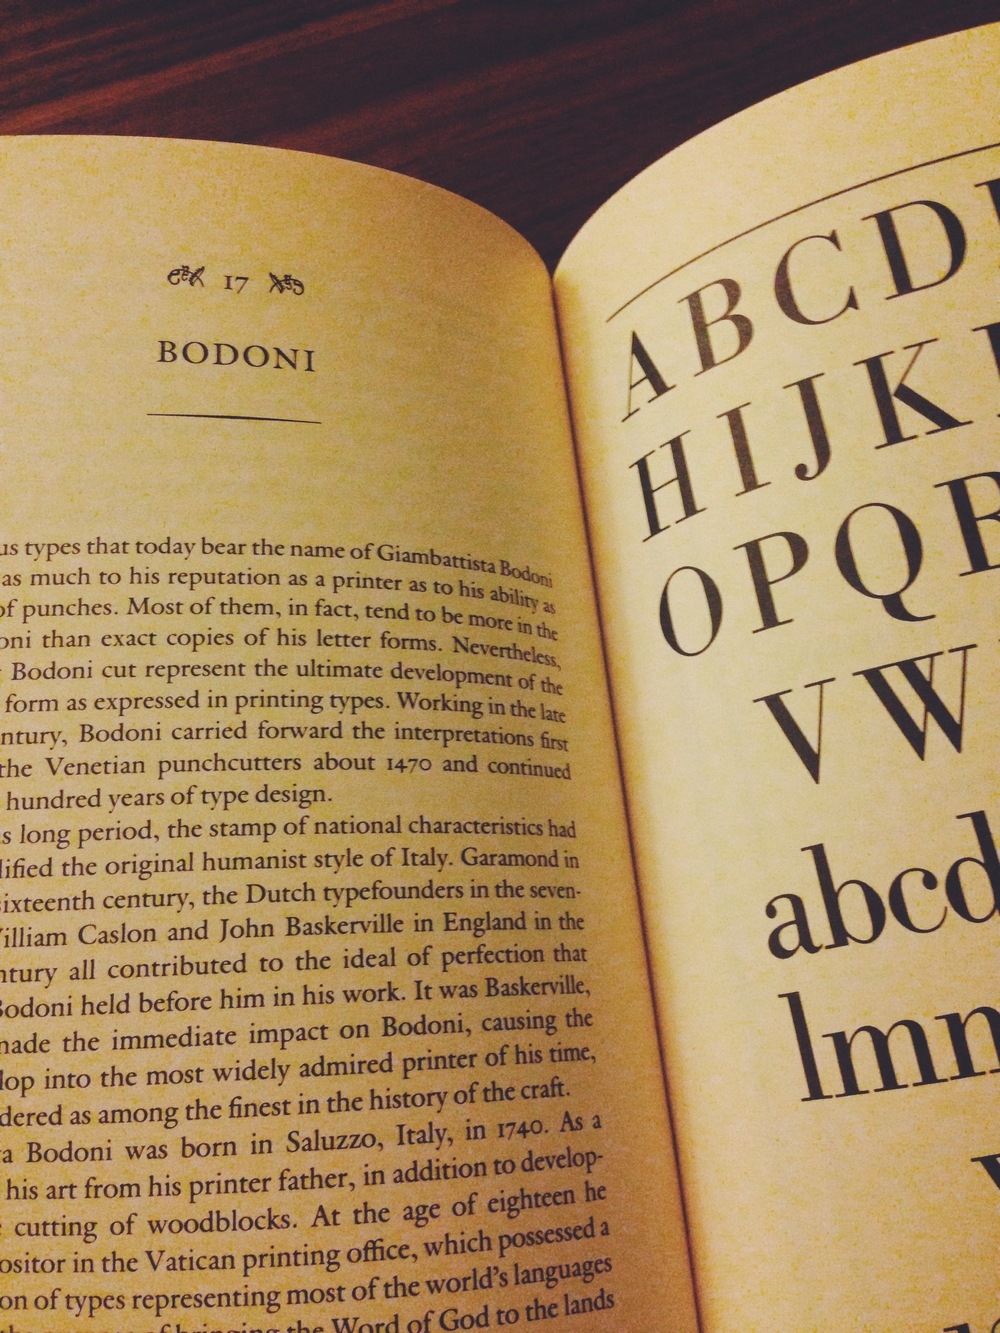 Anatomy of A Typeface by Alexander Lawson